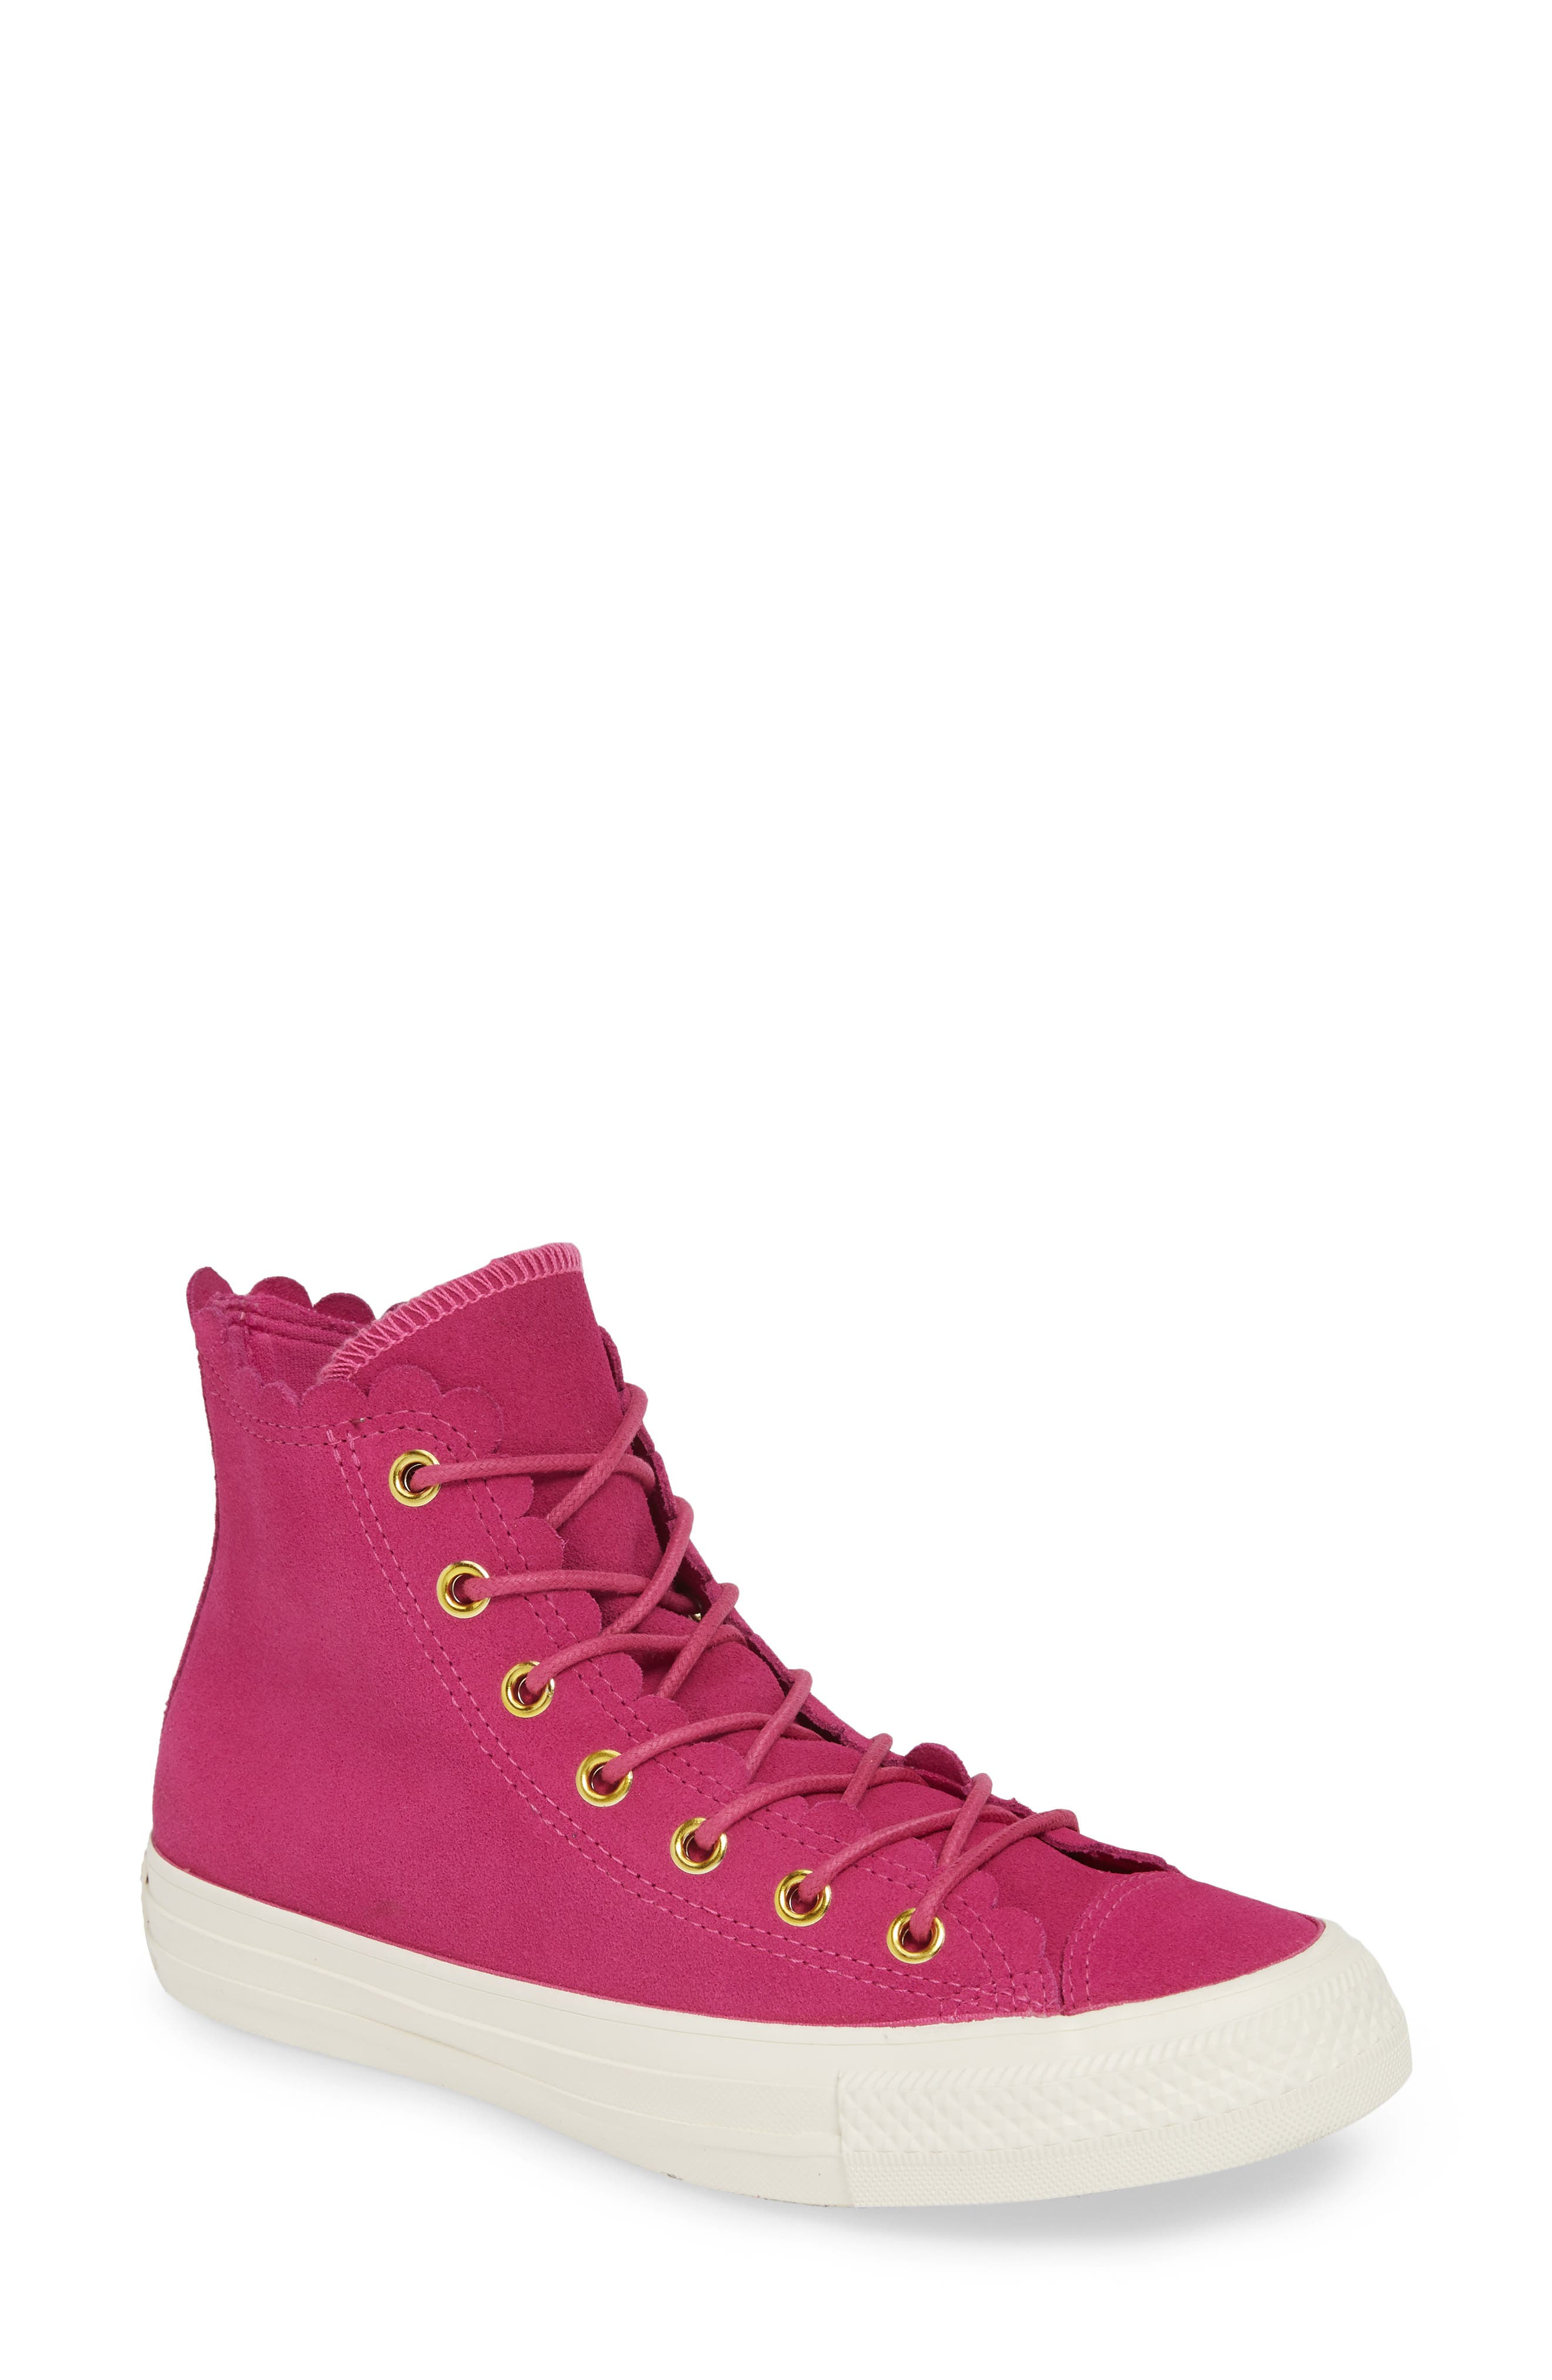 Converse Chuck Taylor All Star Scallop High Top Suede Sneaker, Pink